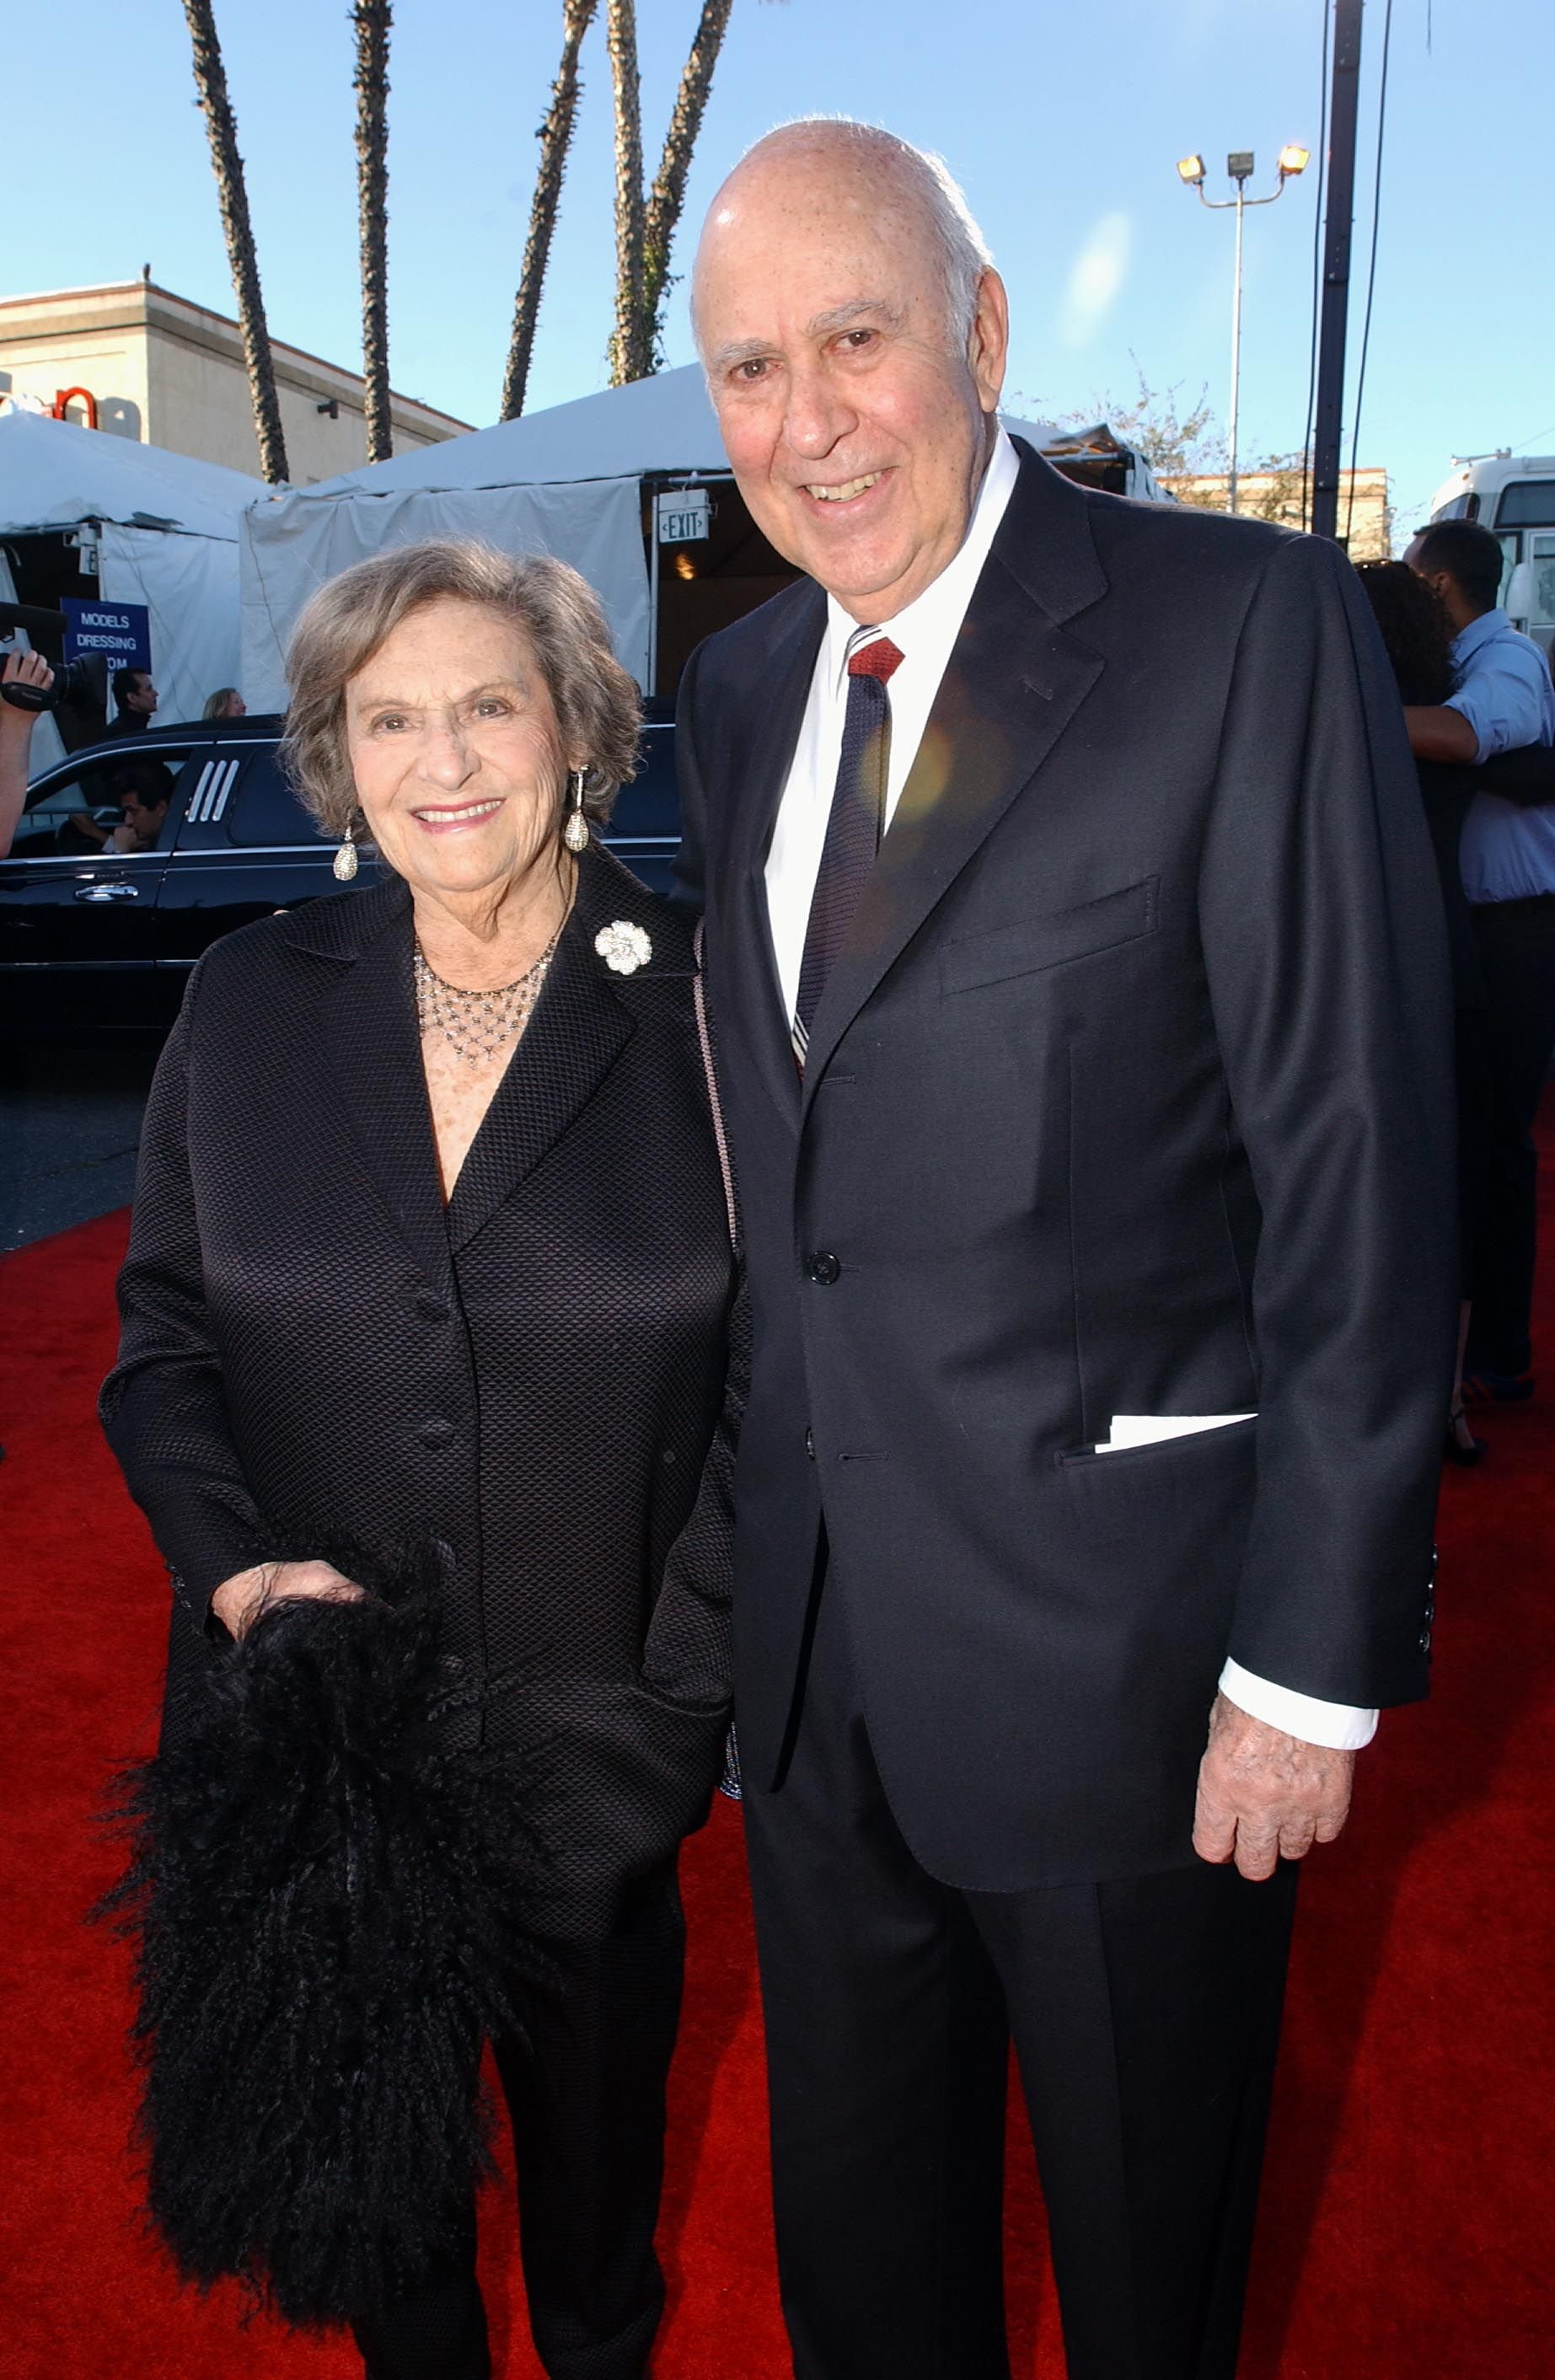 Carl Reiner et sa femme Estelle au Hollywood Palladium le 2 mars 2003 à Hollywood, Californie. | Photo : Getty Images